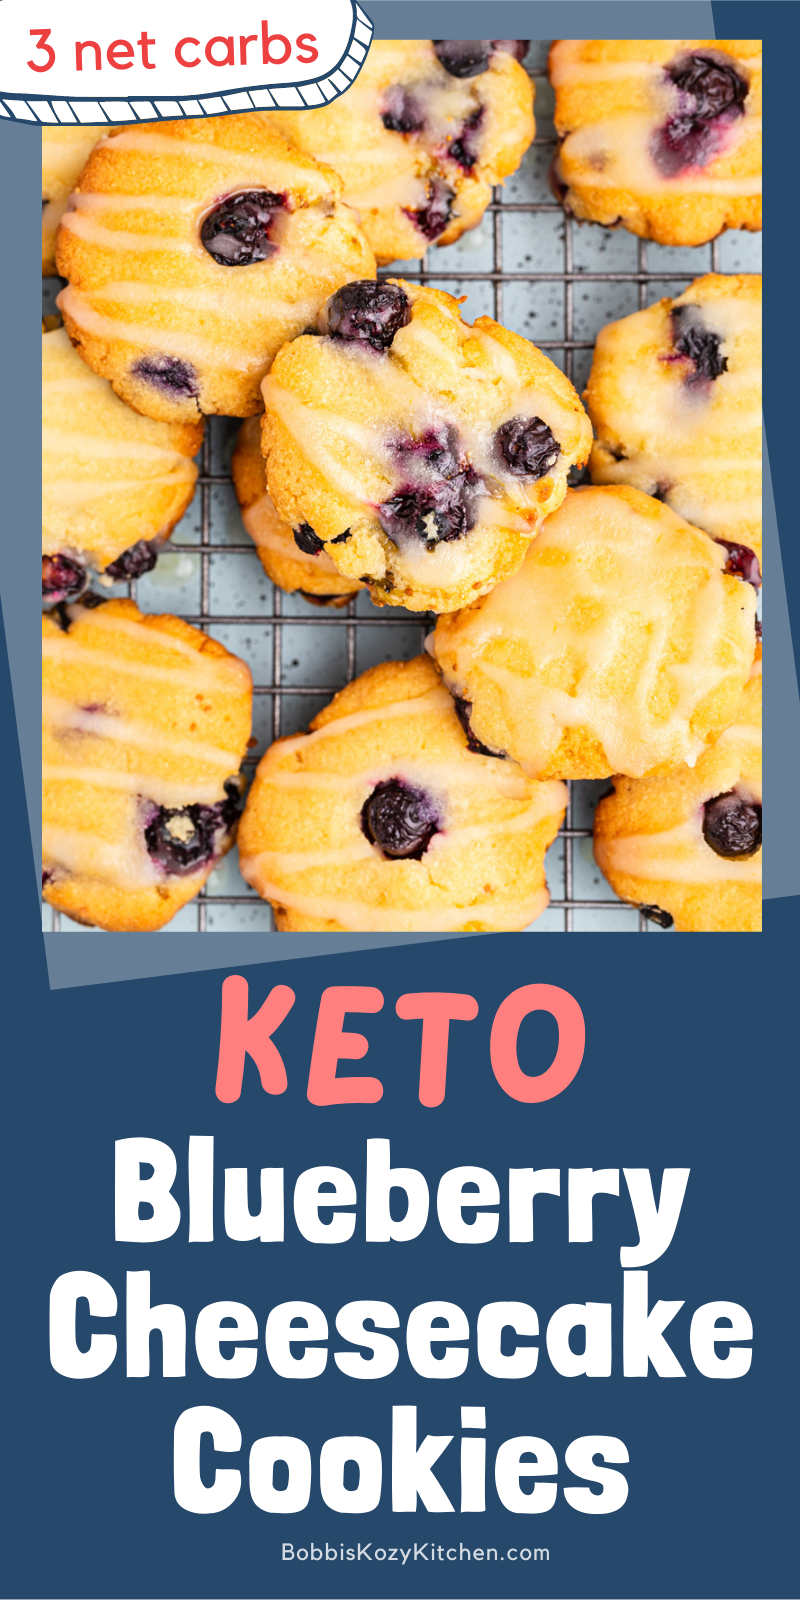 Keto Blueberry Cheesecake Cookies - These gluten-free keto blueberry cheesecake cookies are tender and delicious with a burst of blueberry and the tang from the lemon drizzle. #glutenfree #grainfree #keto #lowcarb #blueberry #lemon #cheesecake #cookies